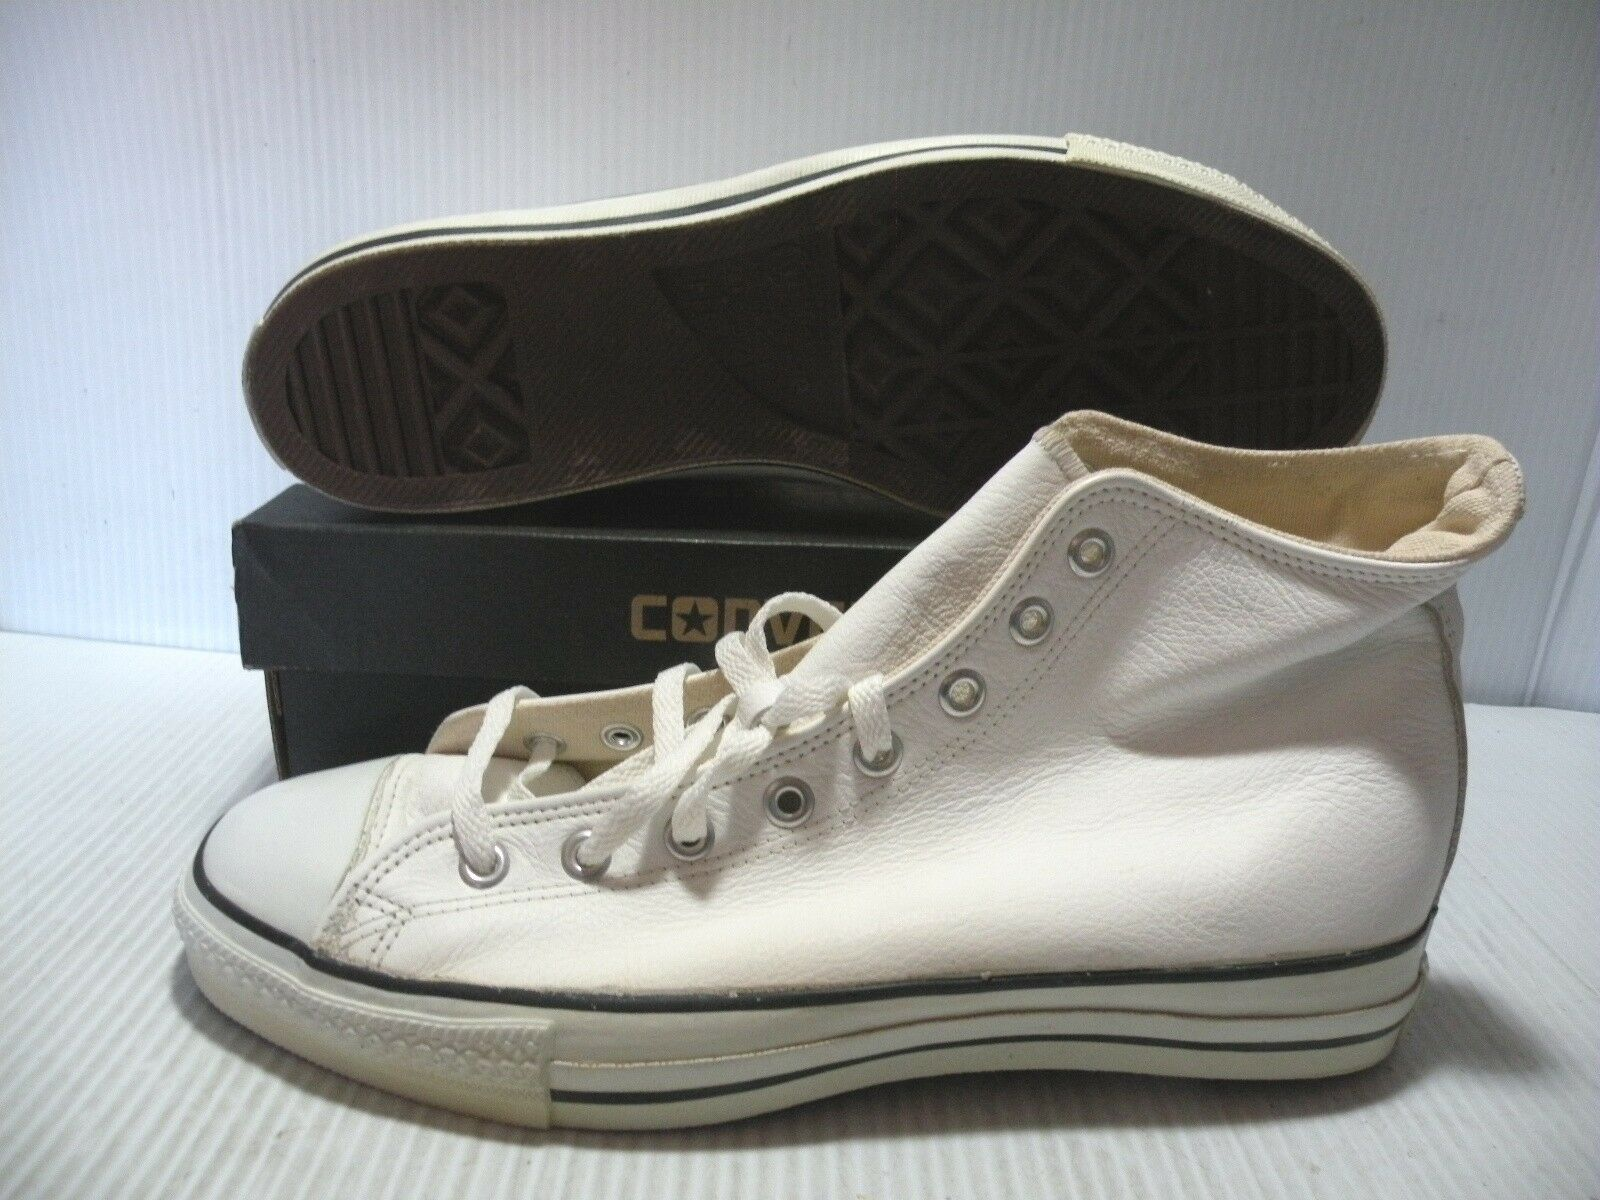 CONVERSE ALL STAR CT VINTAGE MADE IN USA Uomo SCARPE BIANCA 1J894 SIZE 11.5 NEW